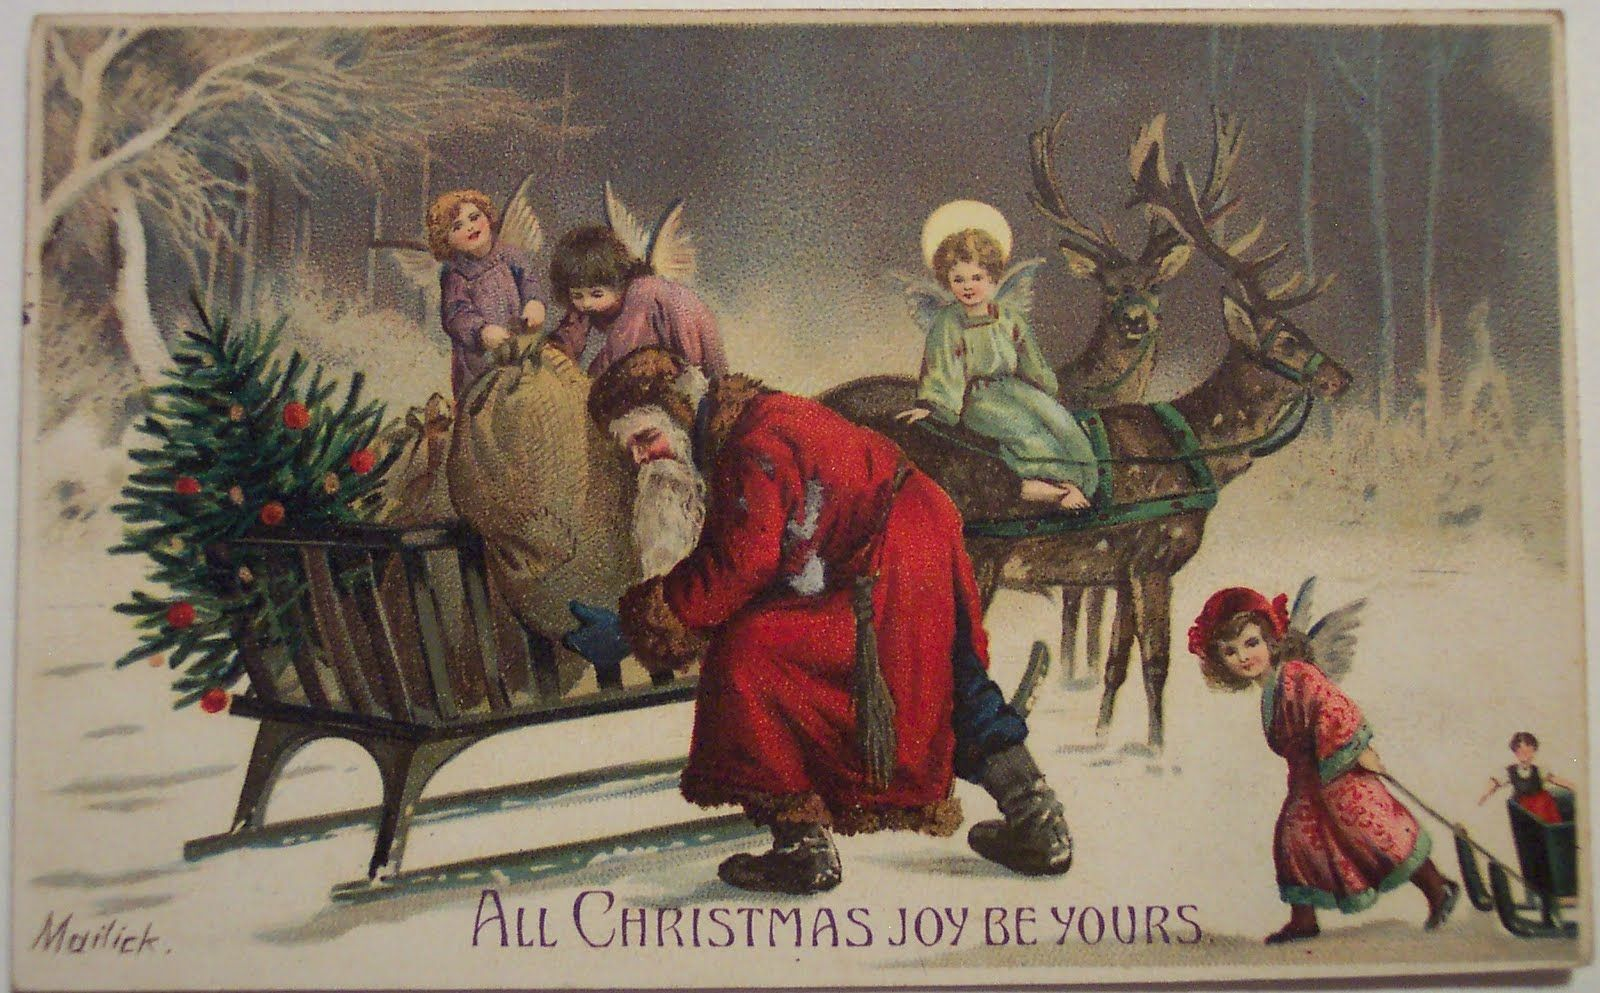 Vintage Christmas Desktop Wallpapers Vintage Christmas Christmas Postcard Christmas Desktop